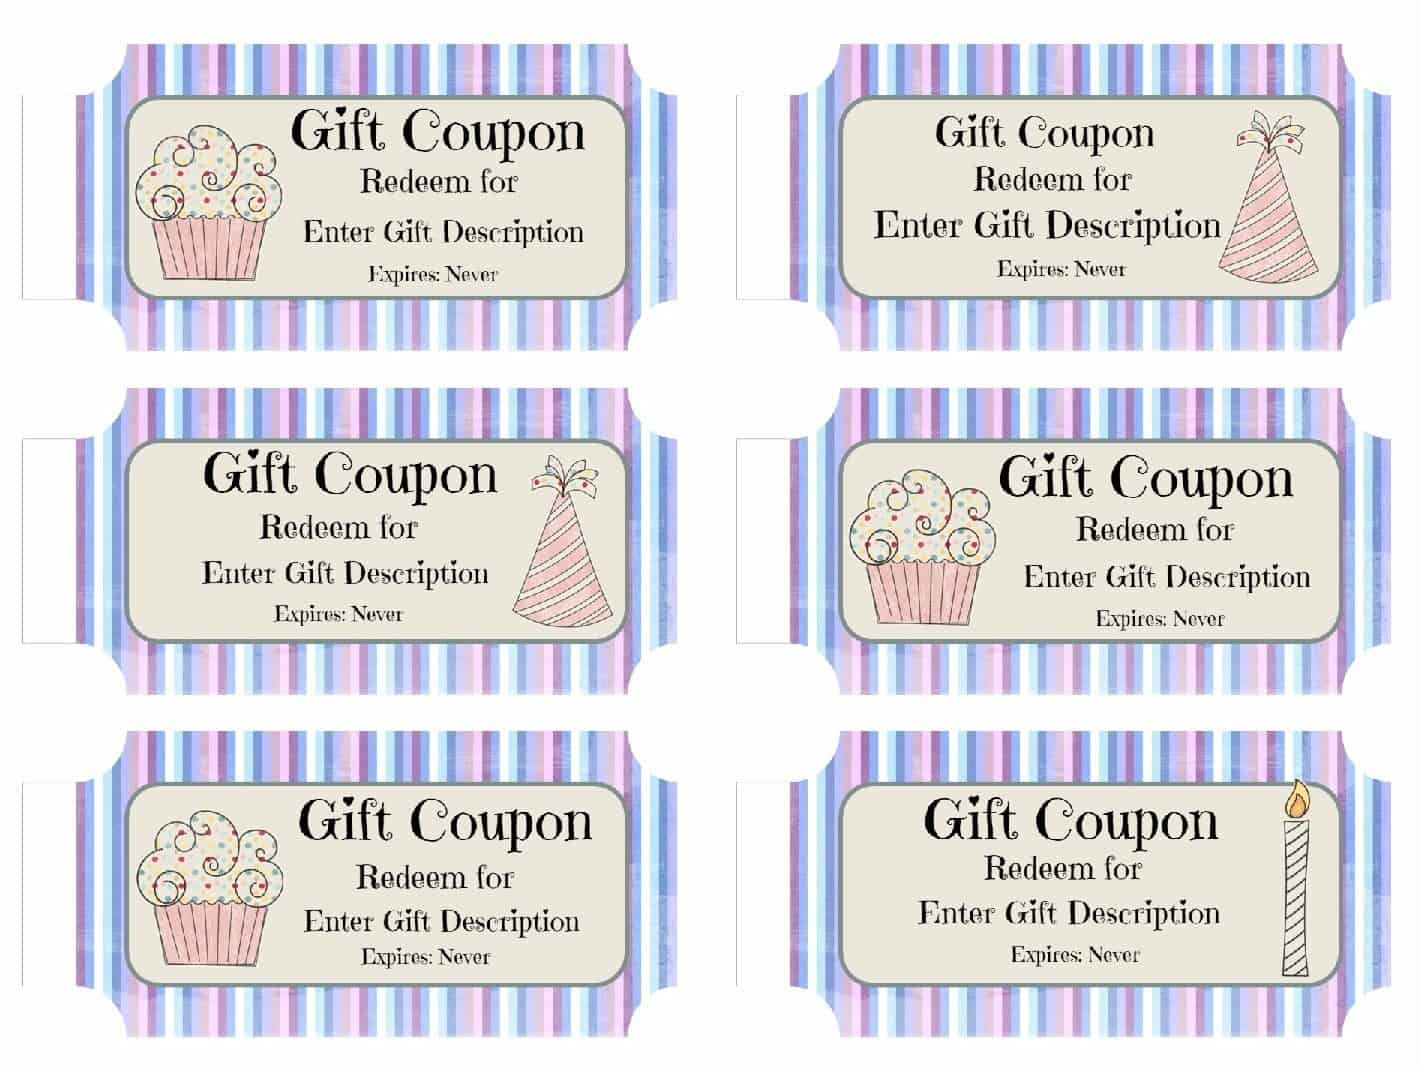 Gifts com coupon code